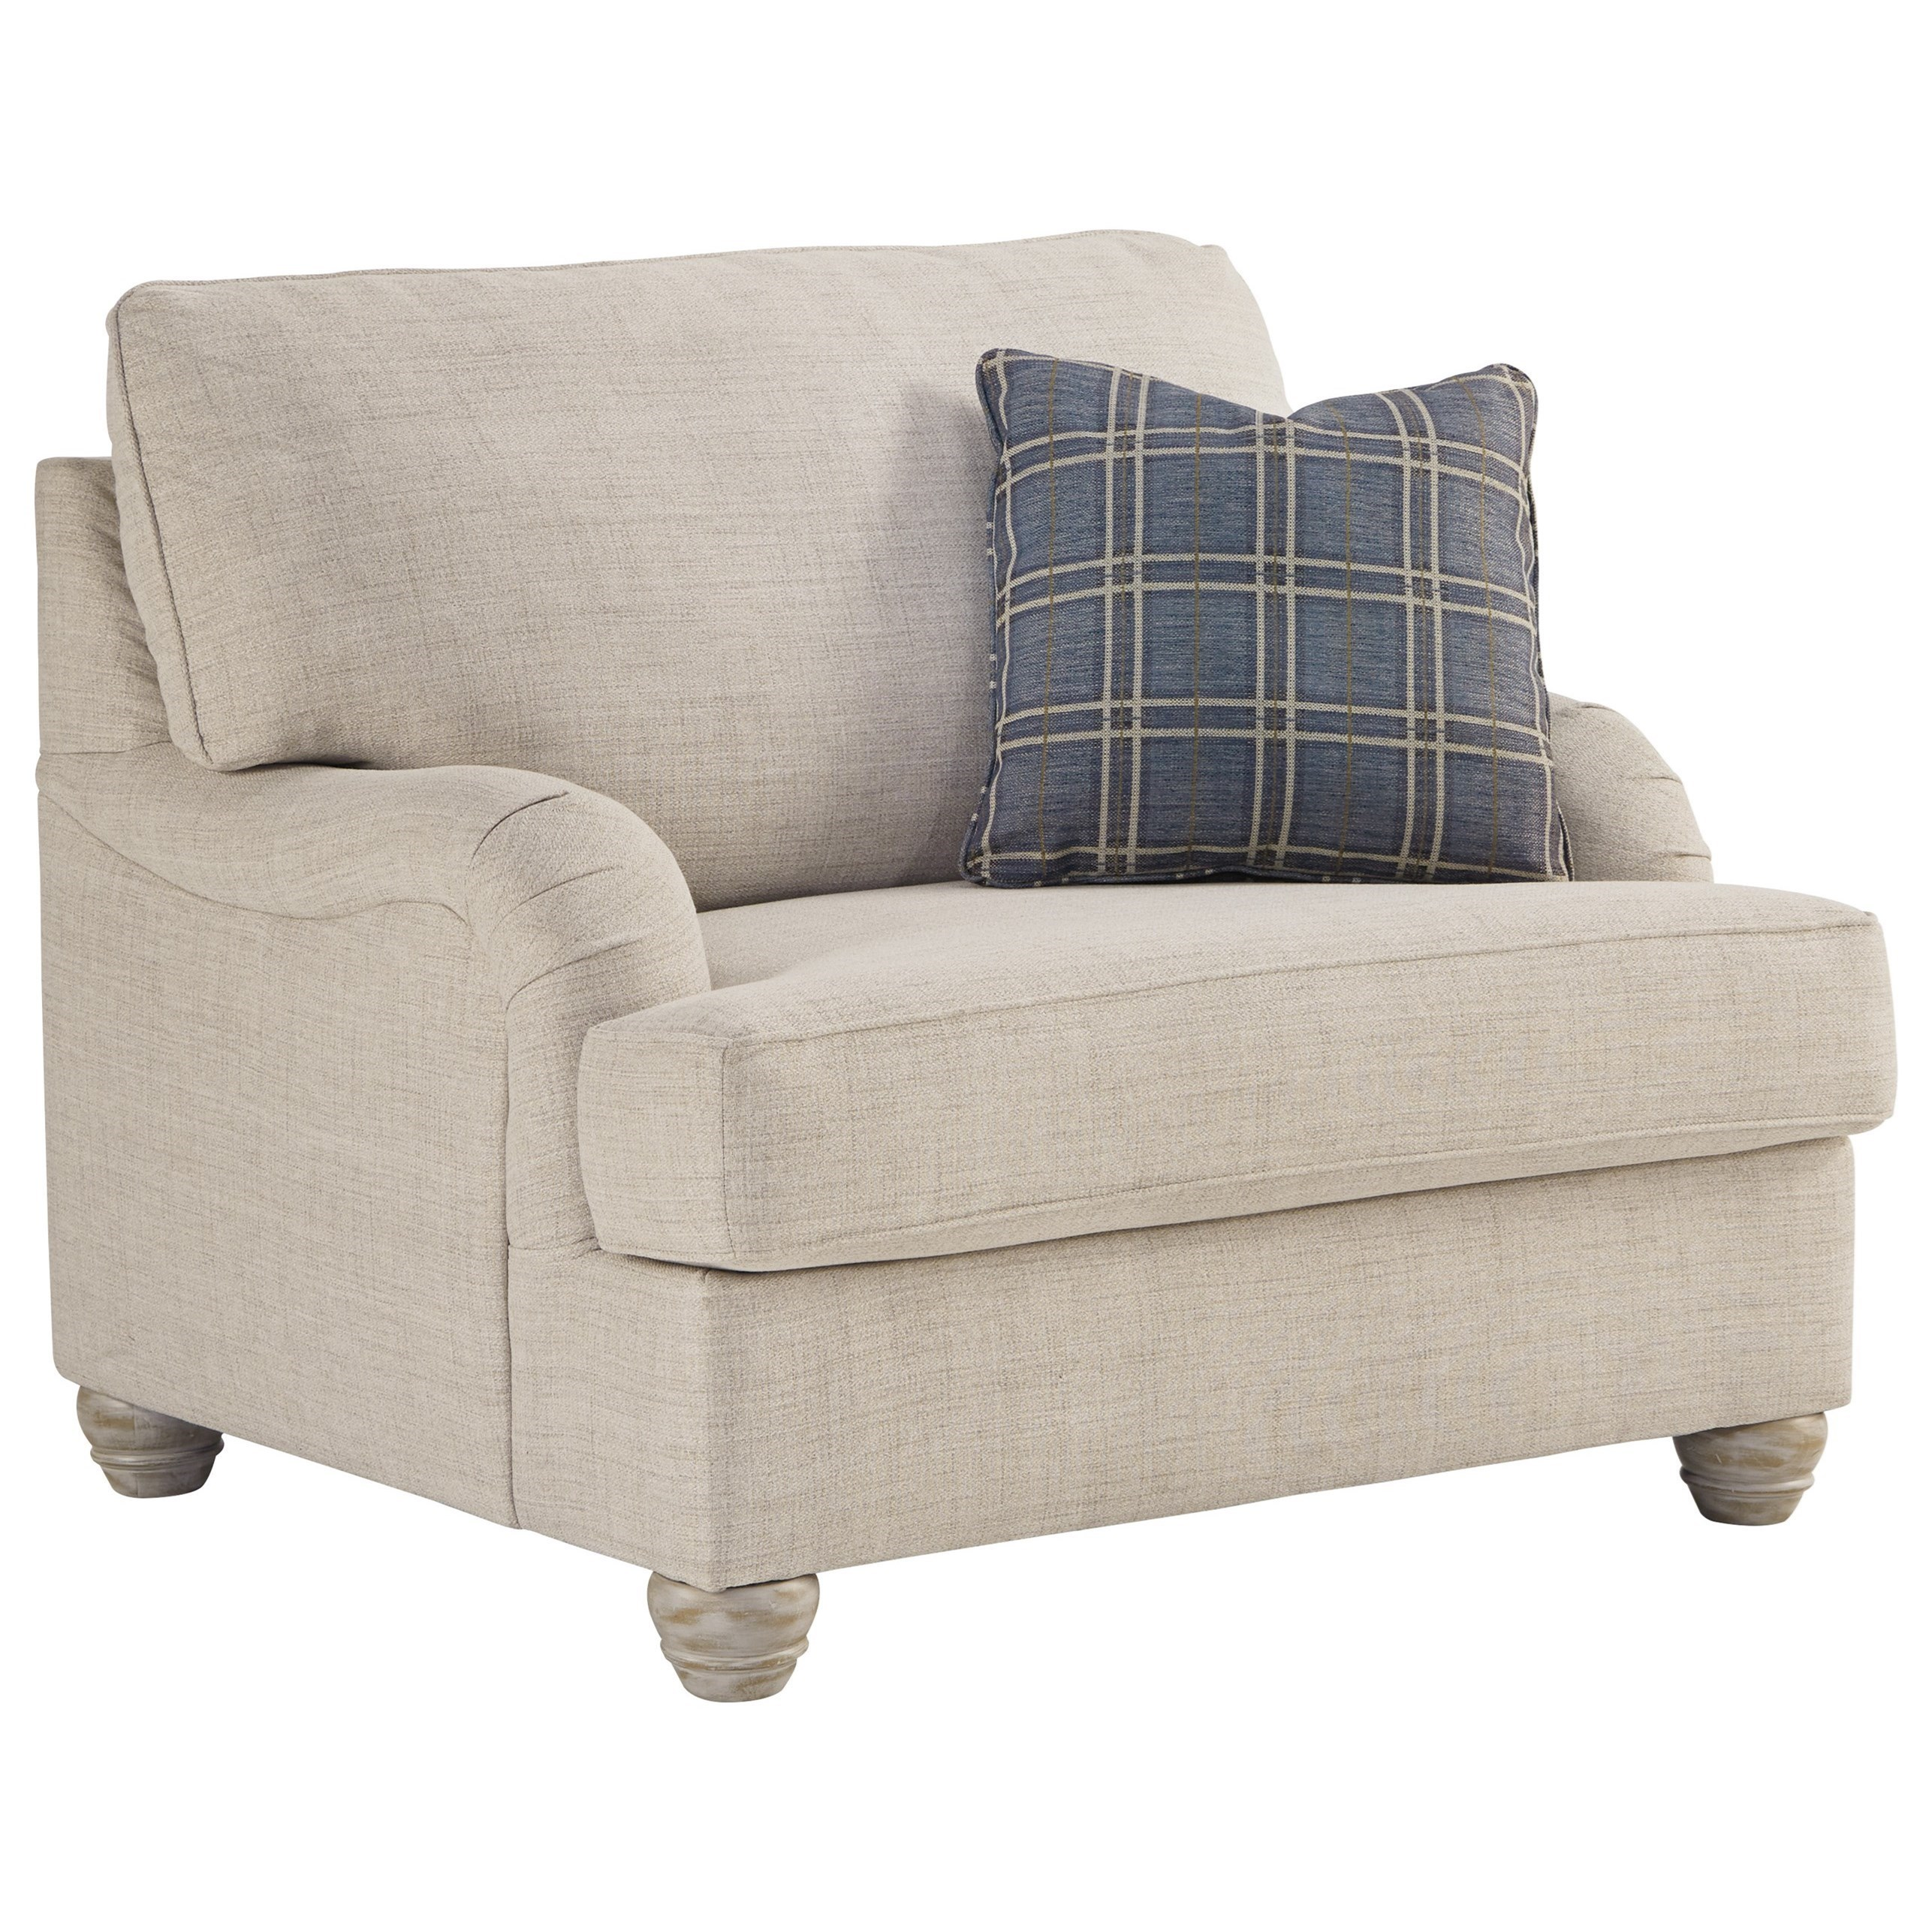 Transitional Chair and a Half with English Arms